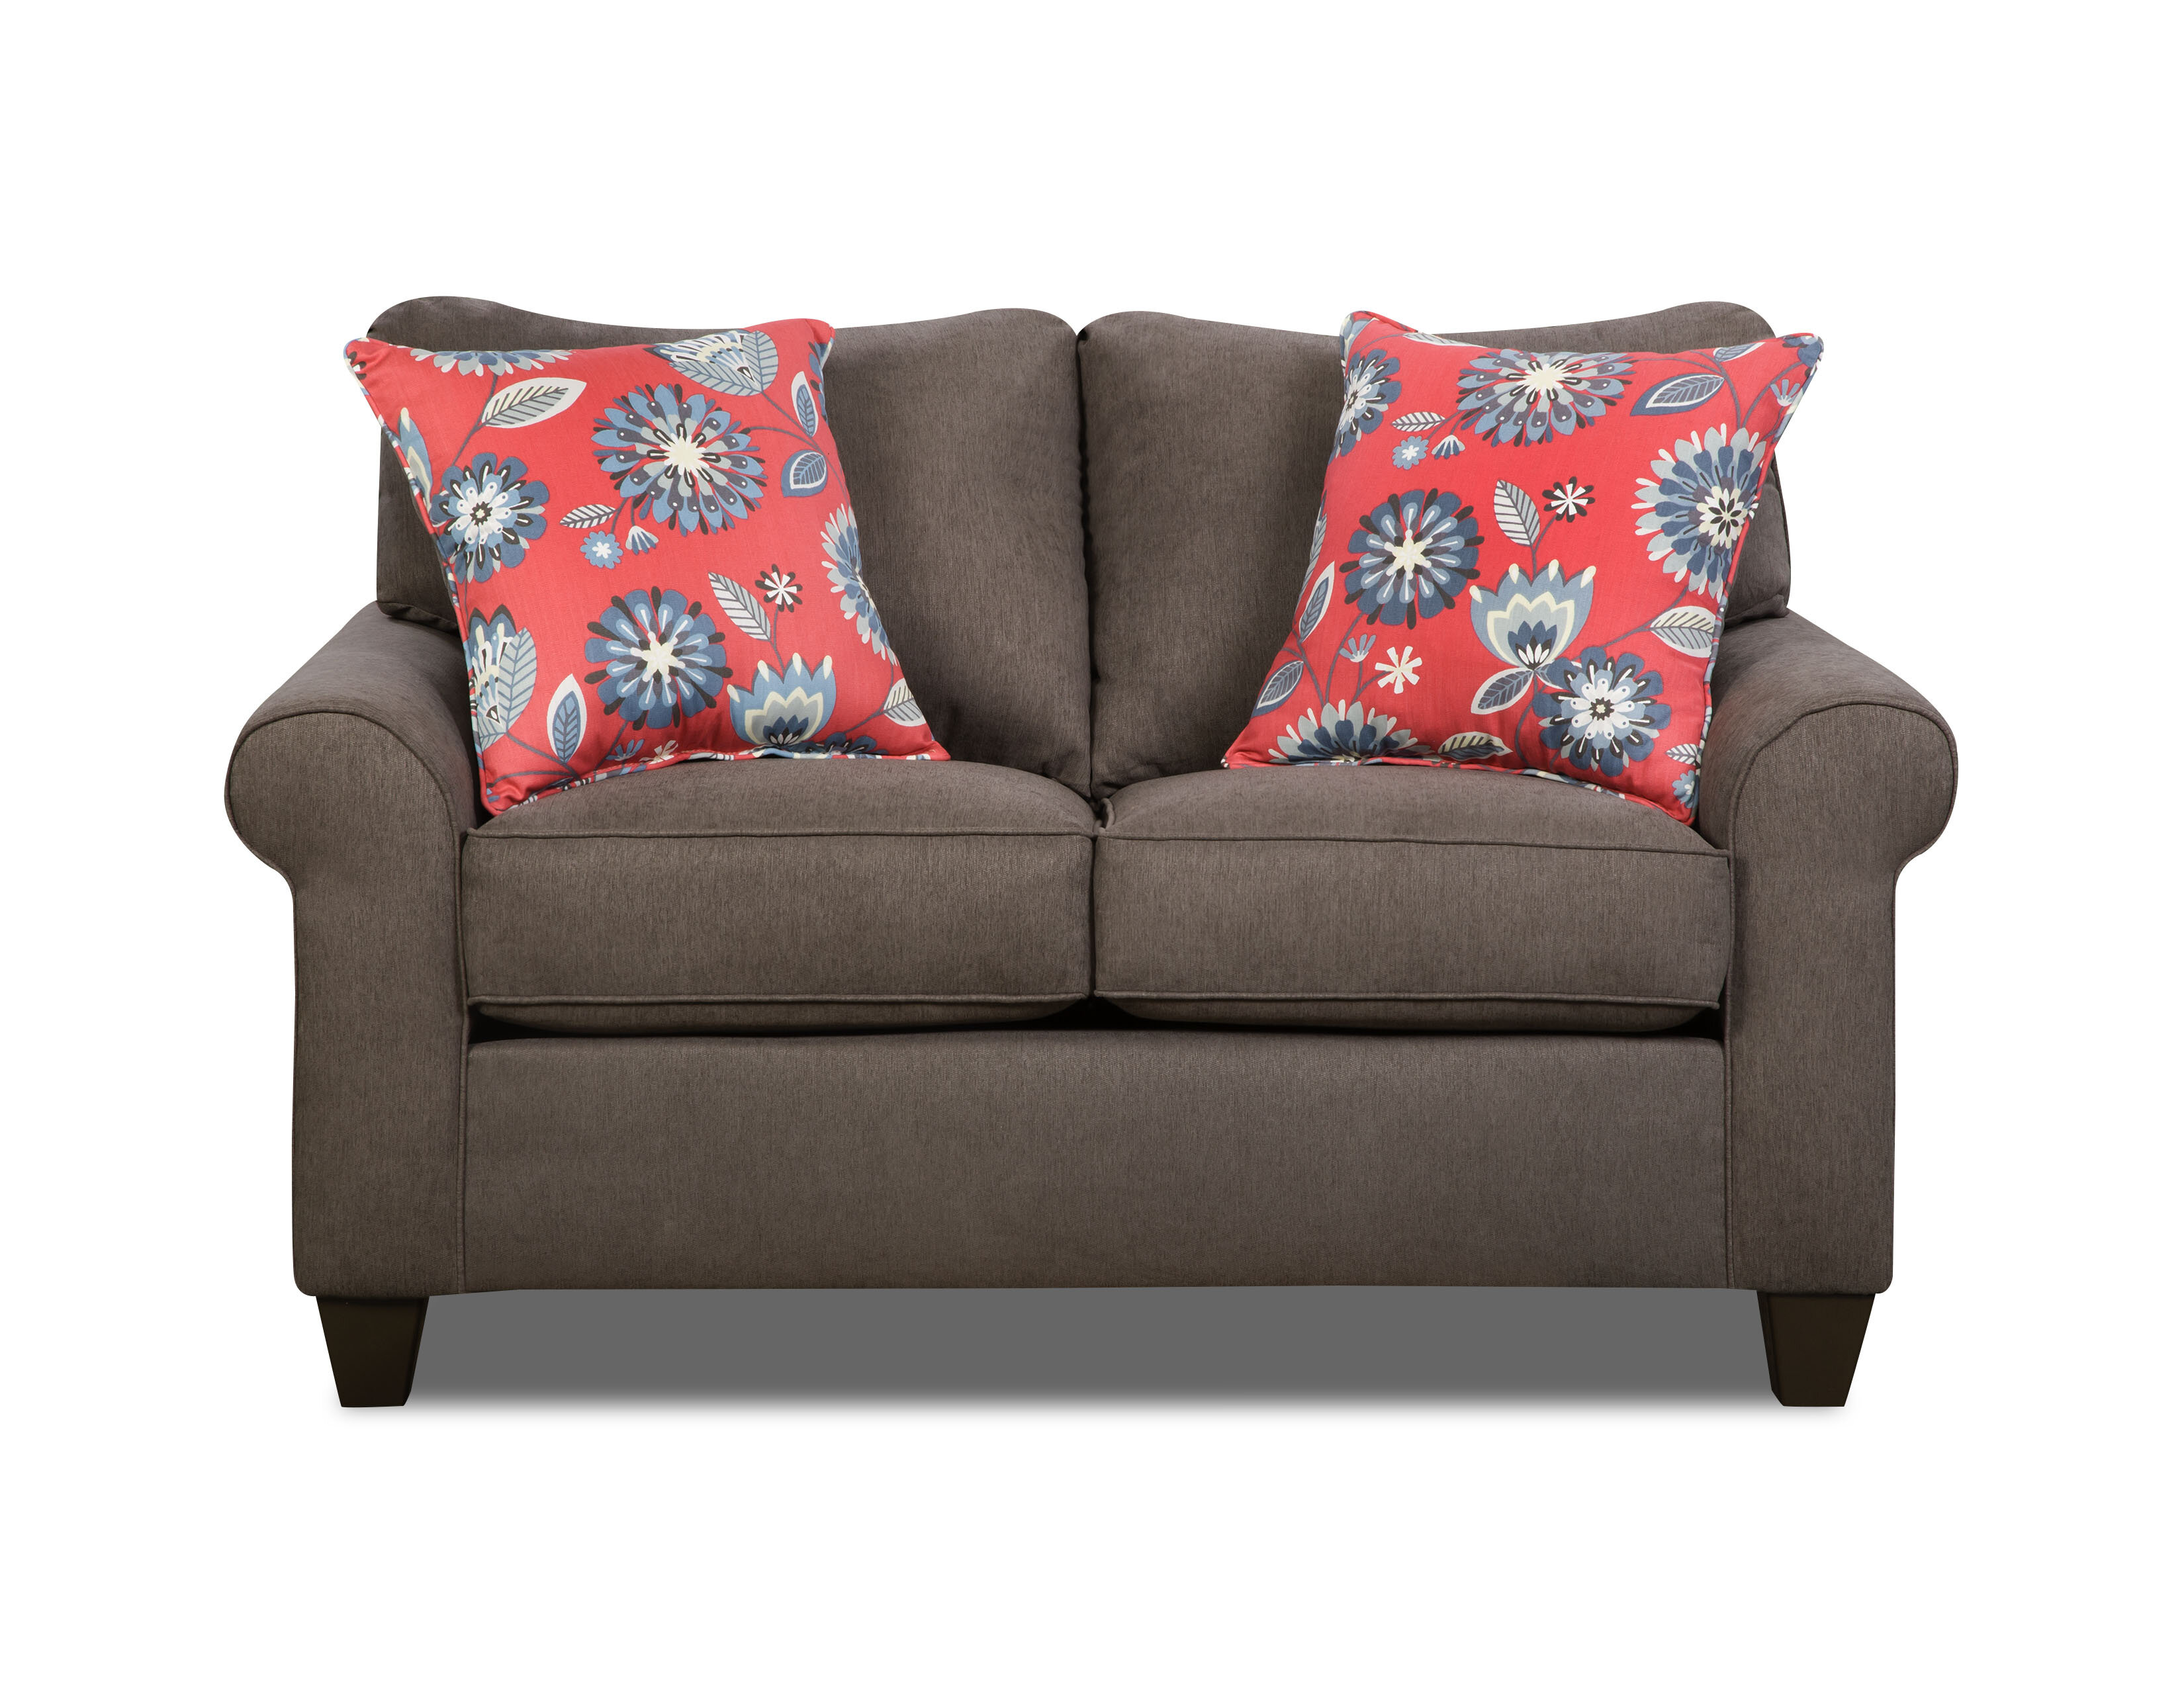 Darby Home Co Bloomington Loveseat